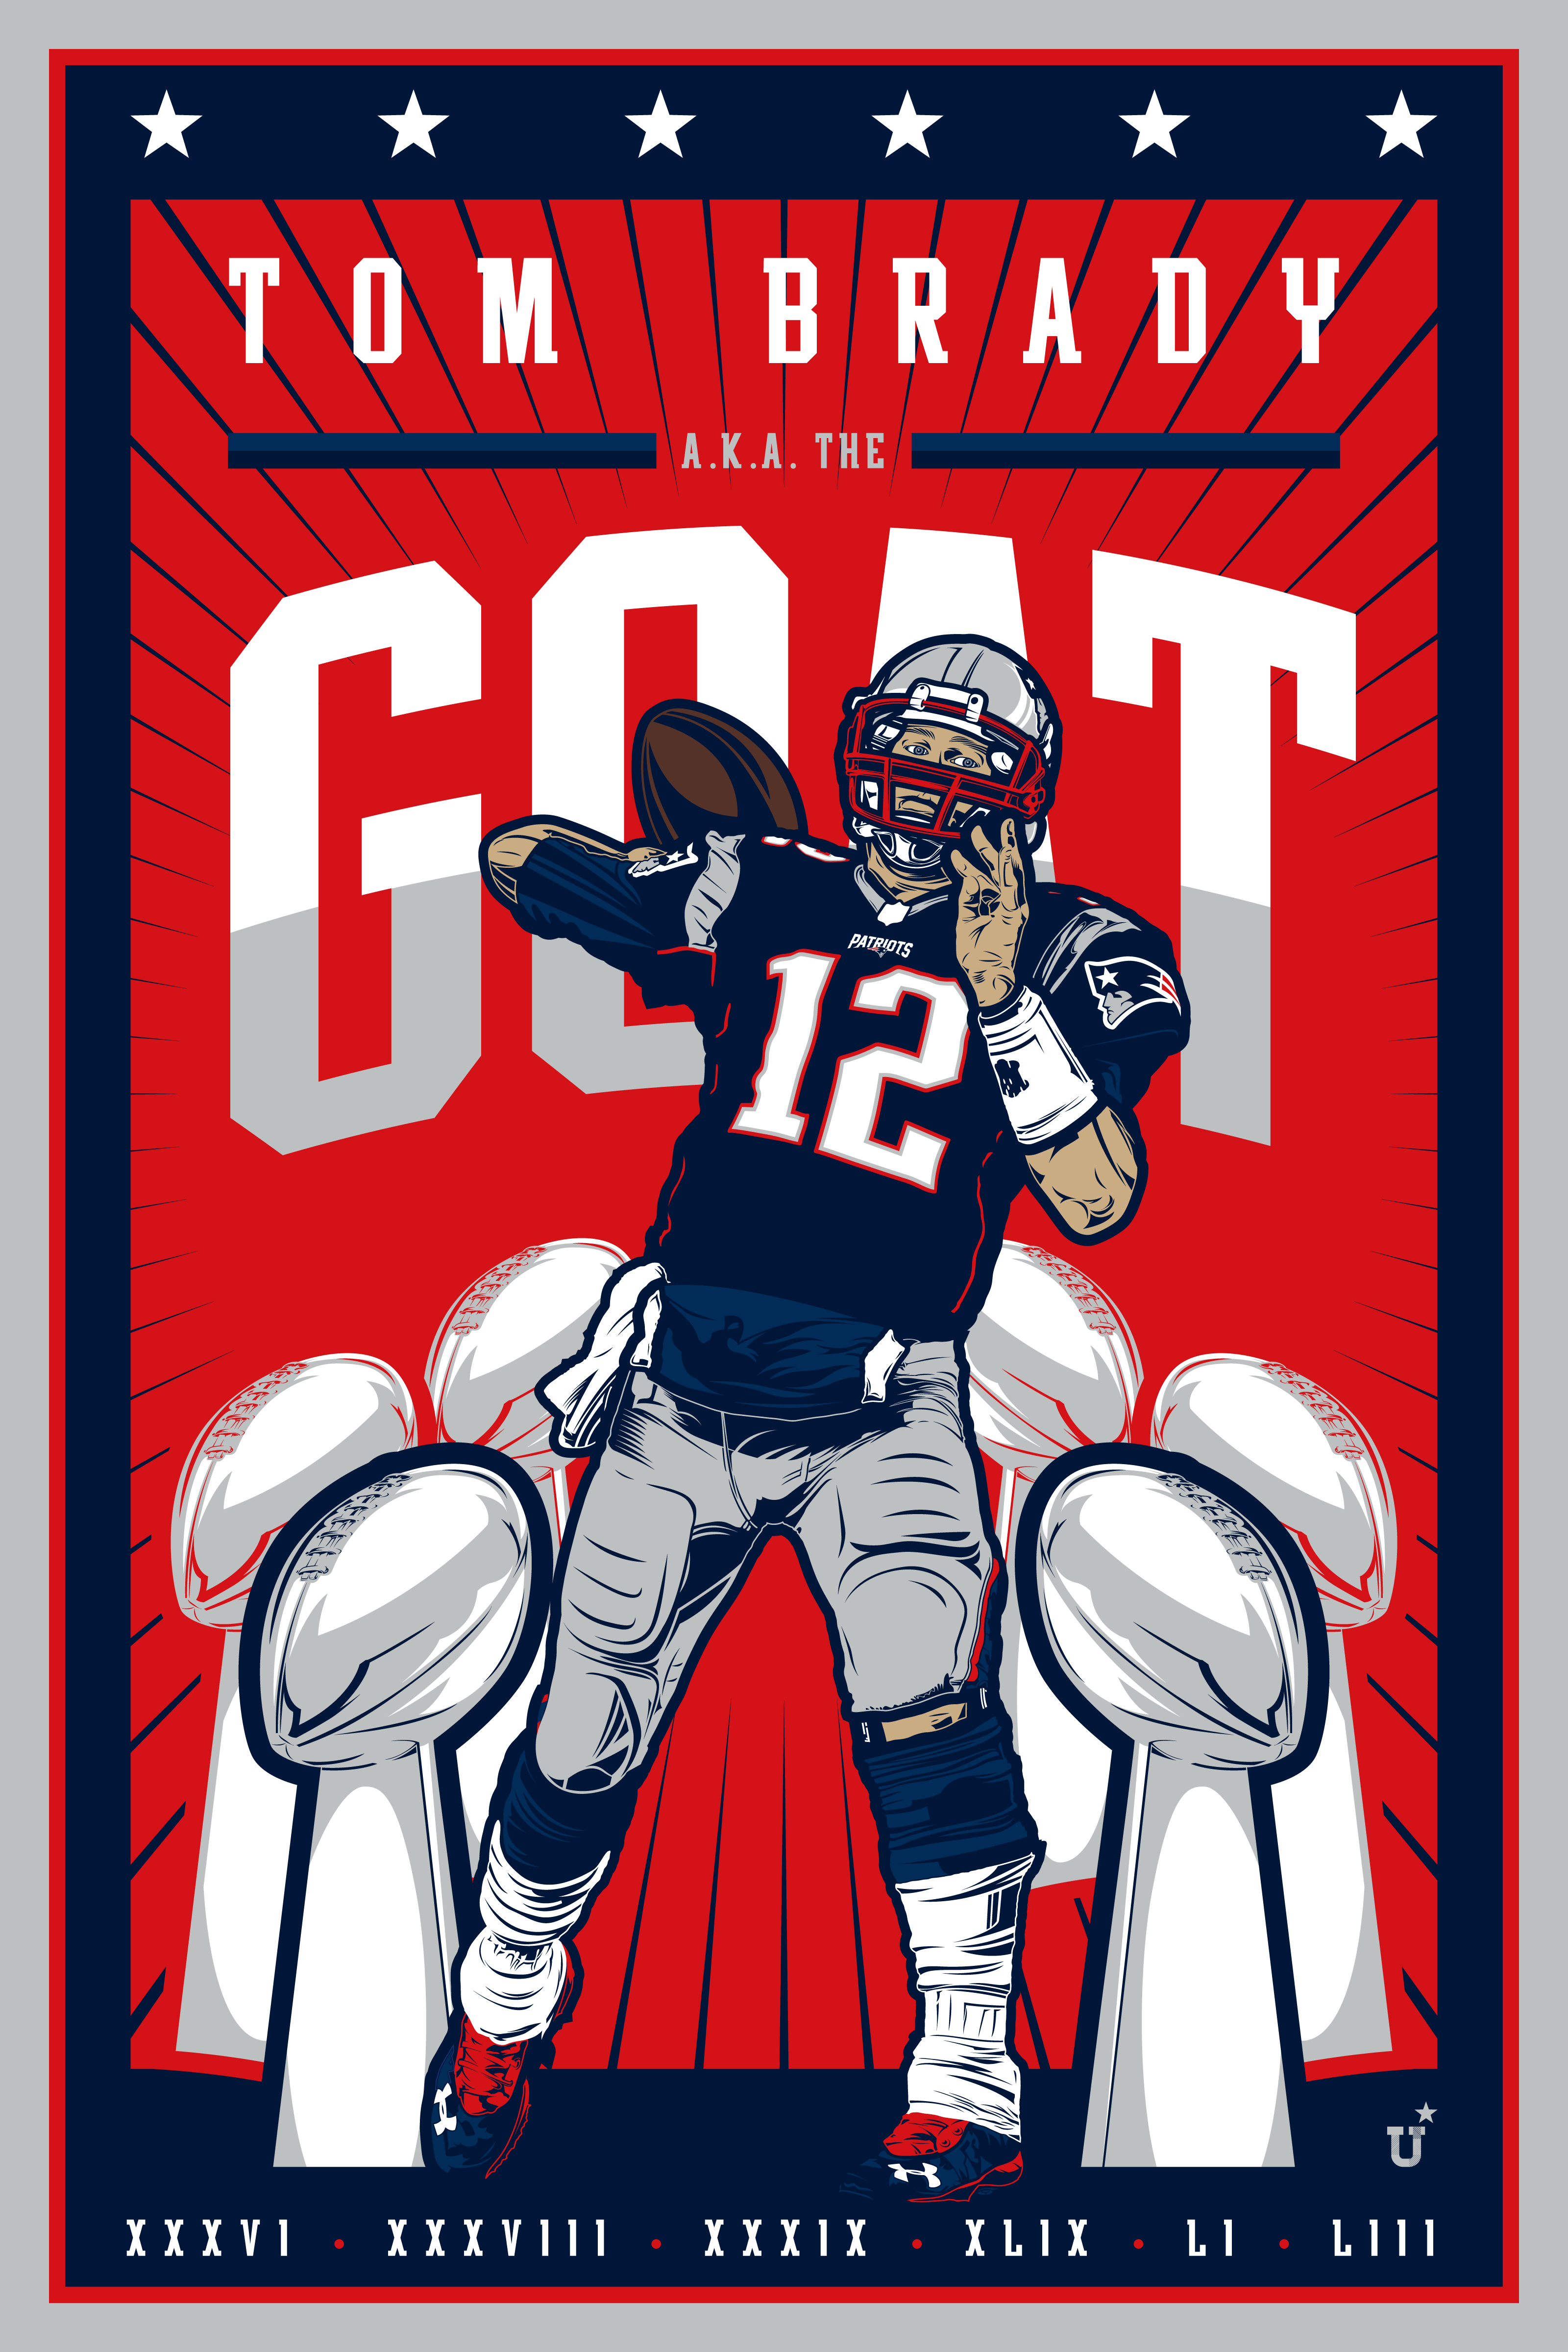 442dfb6a366ba UNOFFICiAL ATHLETIC | Tom Brady Poster Design